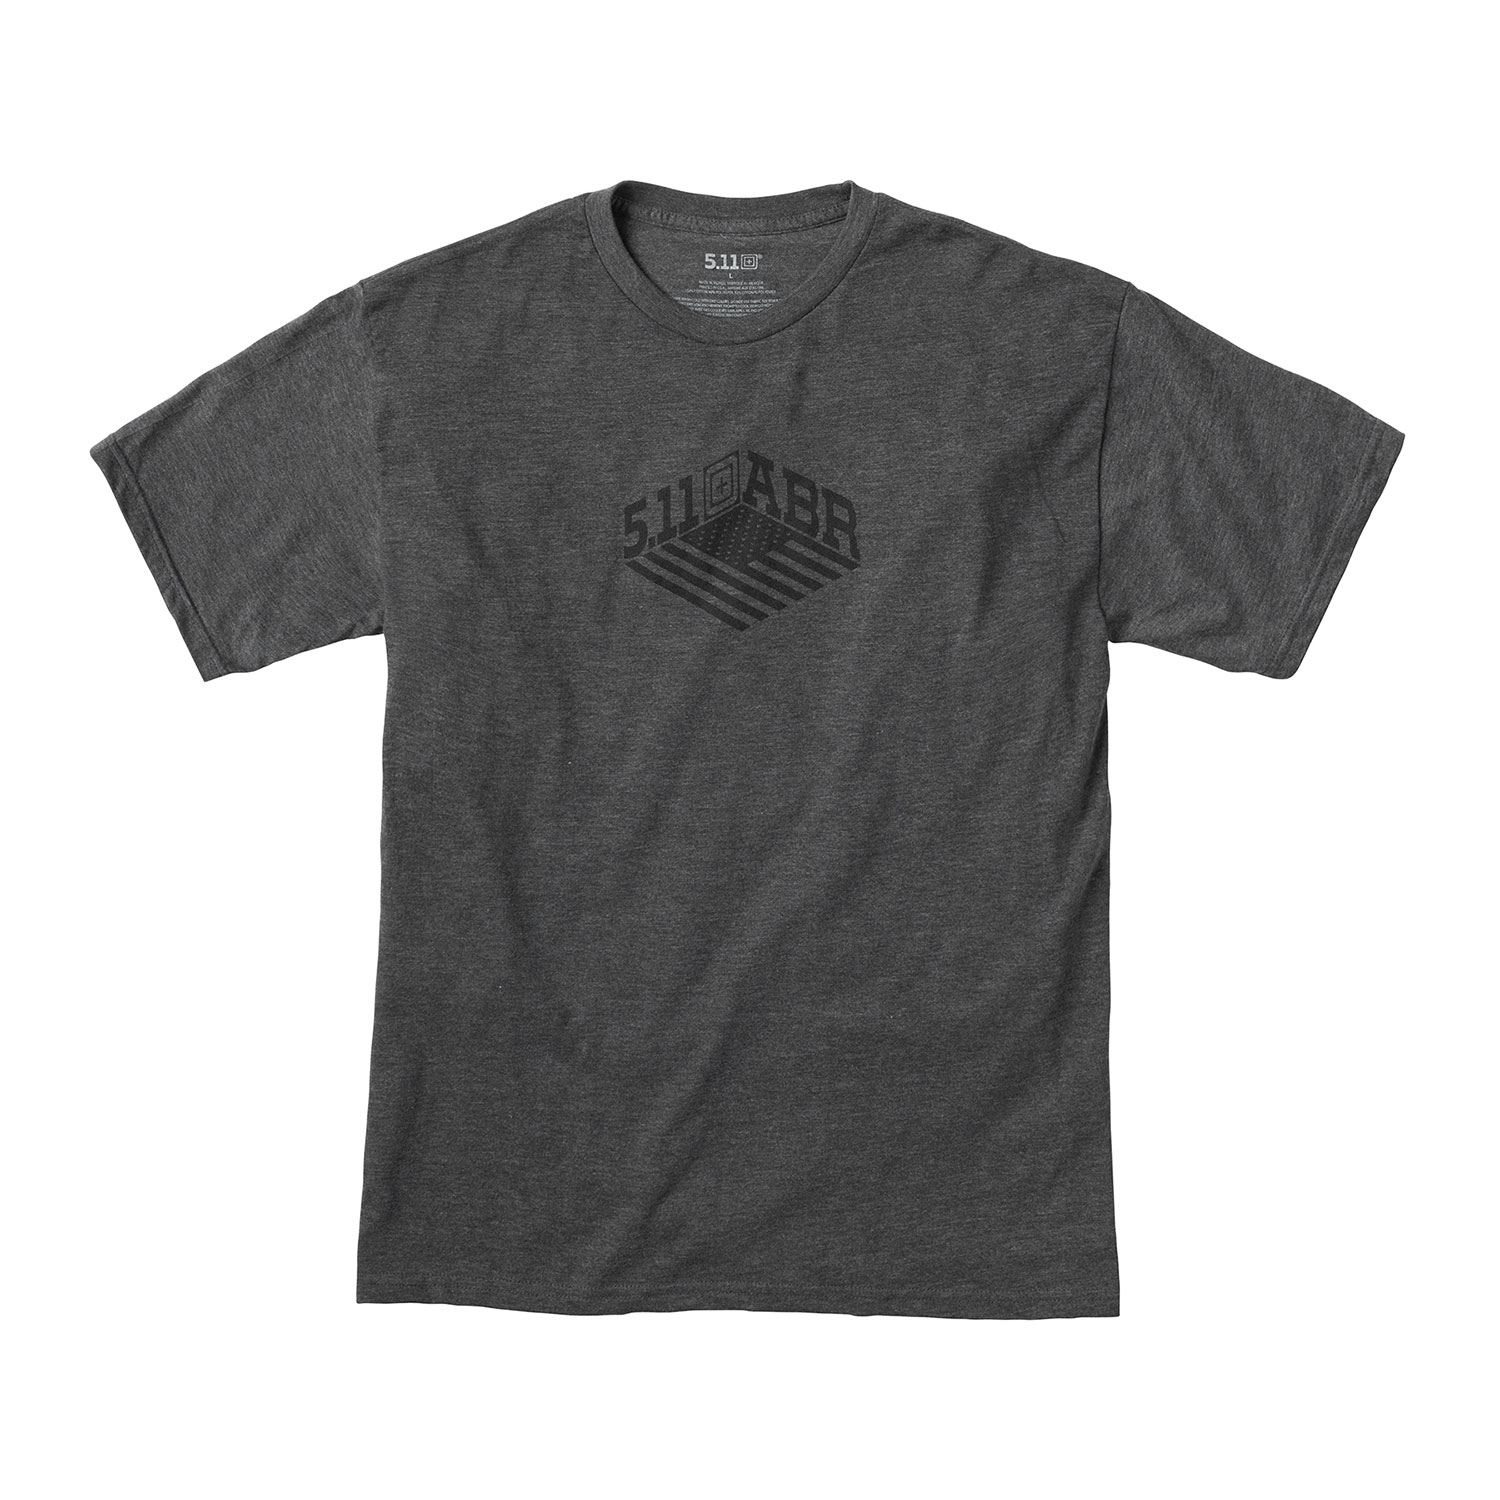 5.11 Tactical Men's Stronghold Short Sleeve Tee